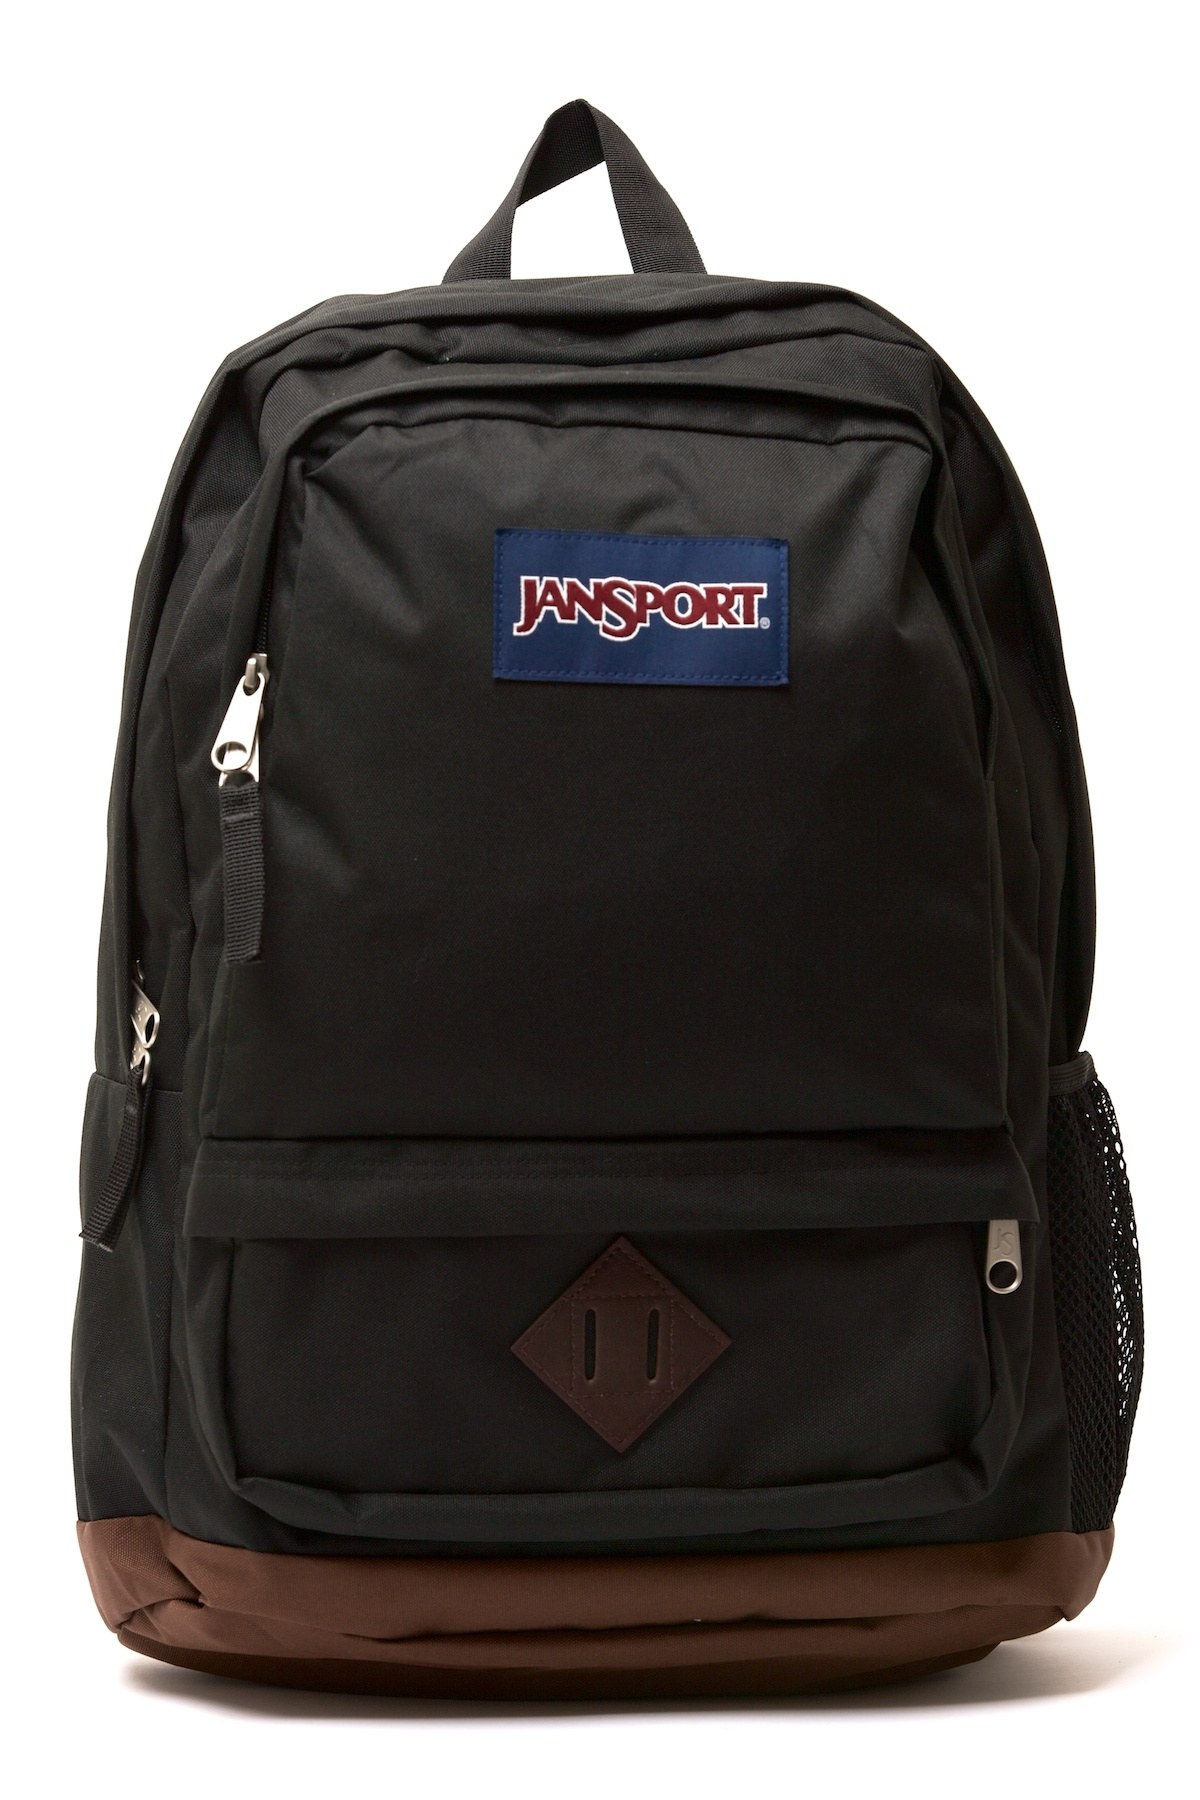 All Black Jansport Backpack uyPPArpG